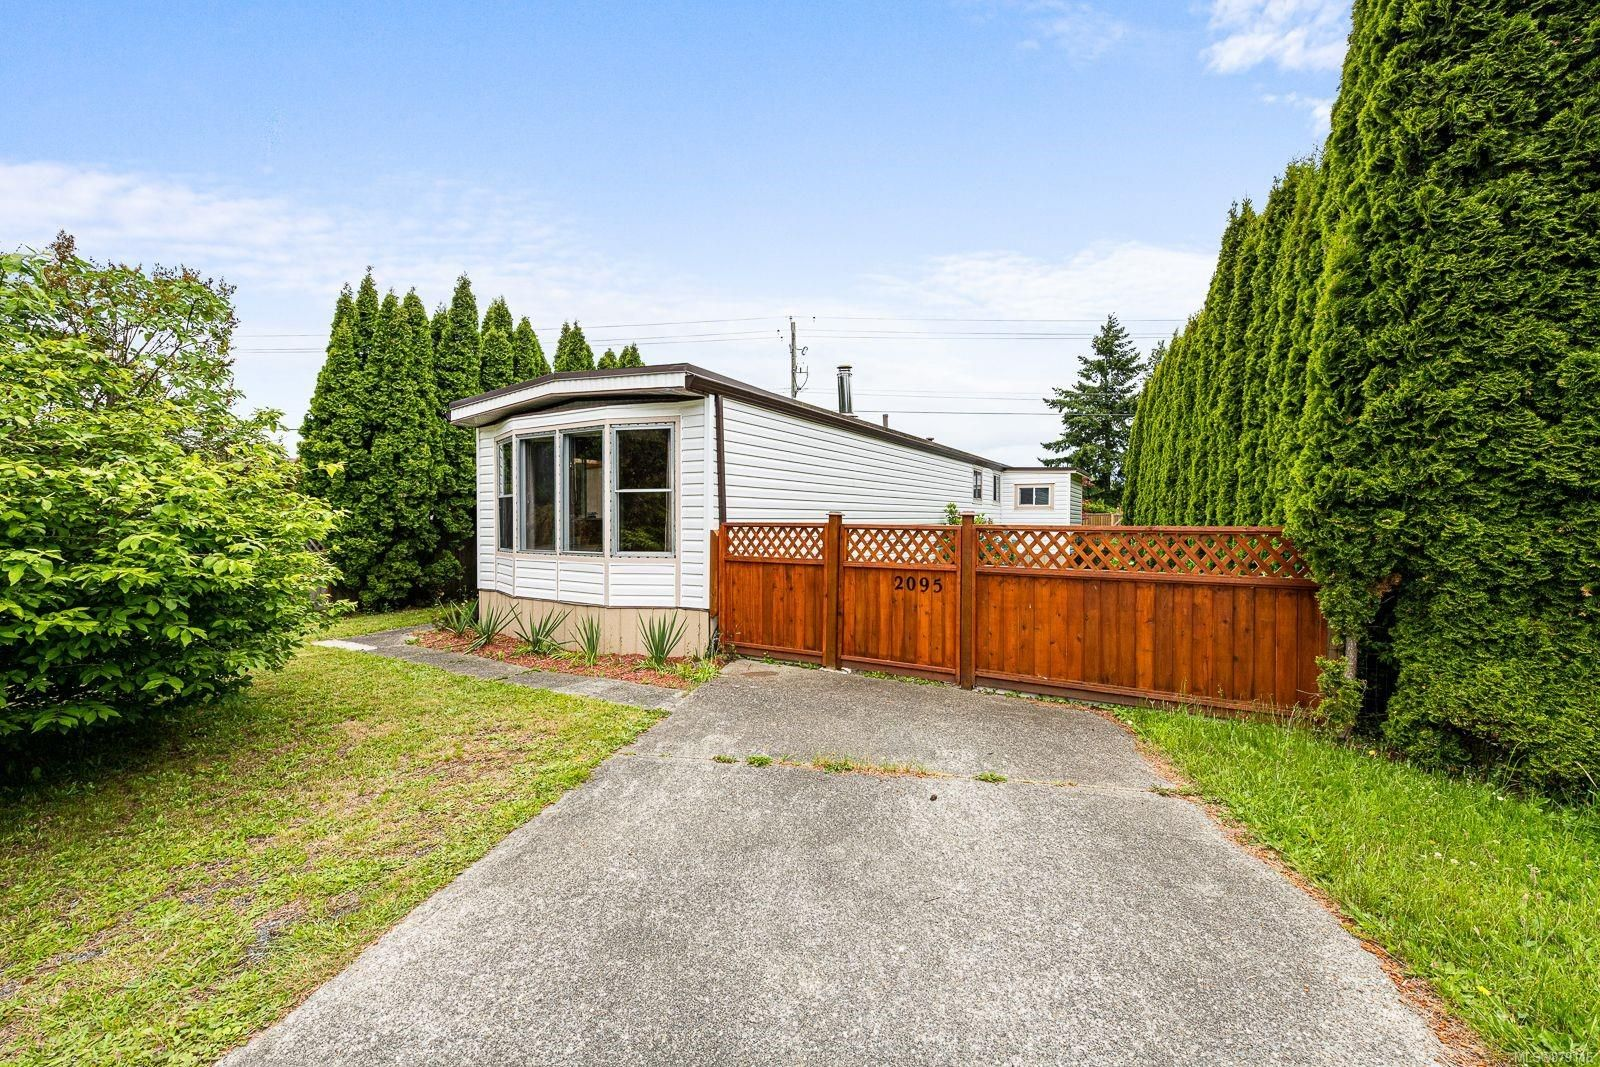 Main Photo: 2095 Pemberton Pl in : CV Comox (Town of) Manufactured Home for sale (Comox Valley)  : MLS®# 879116